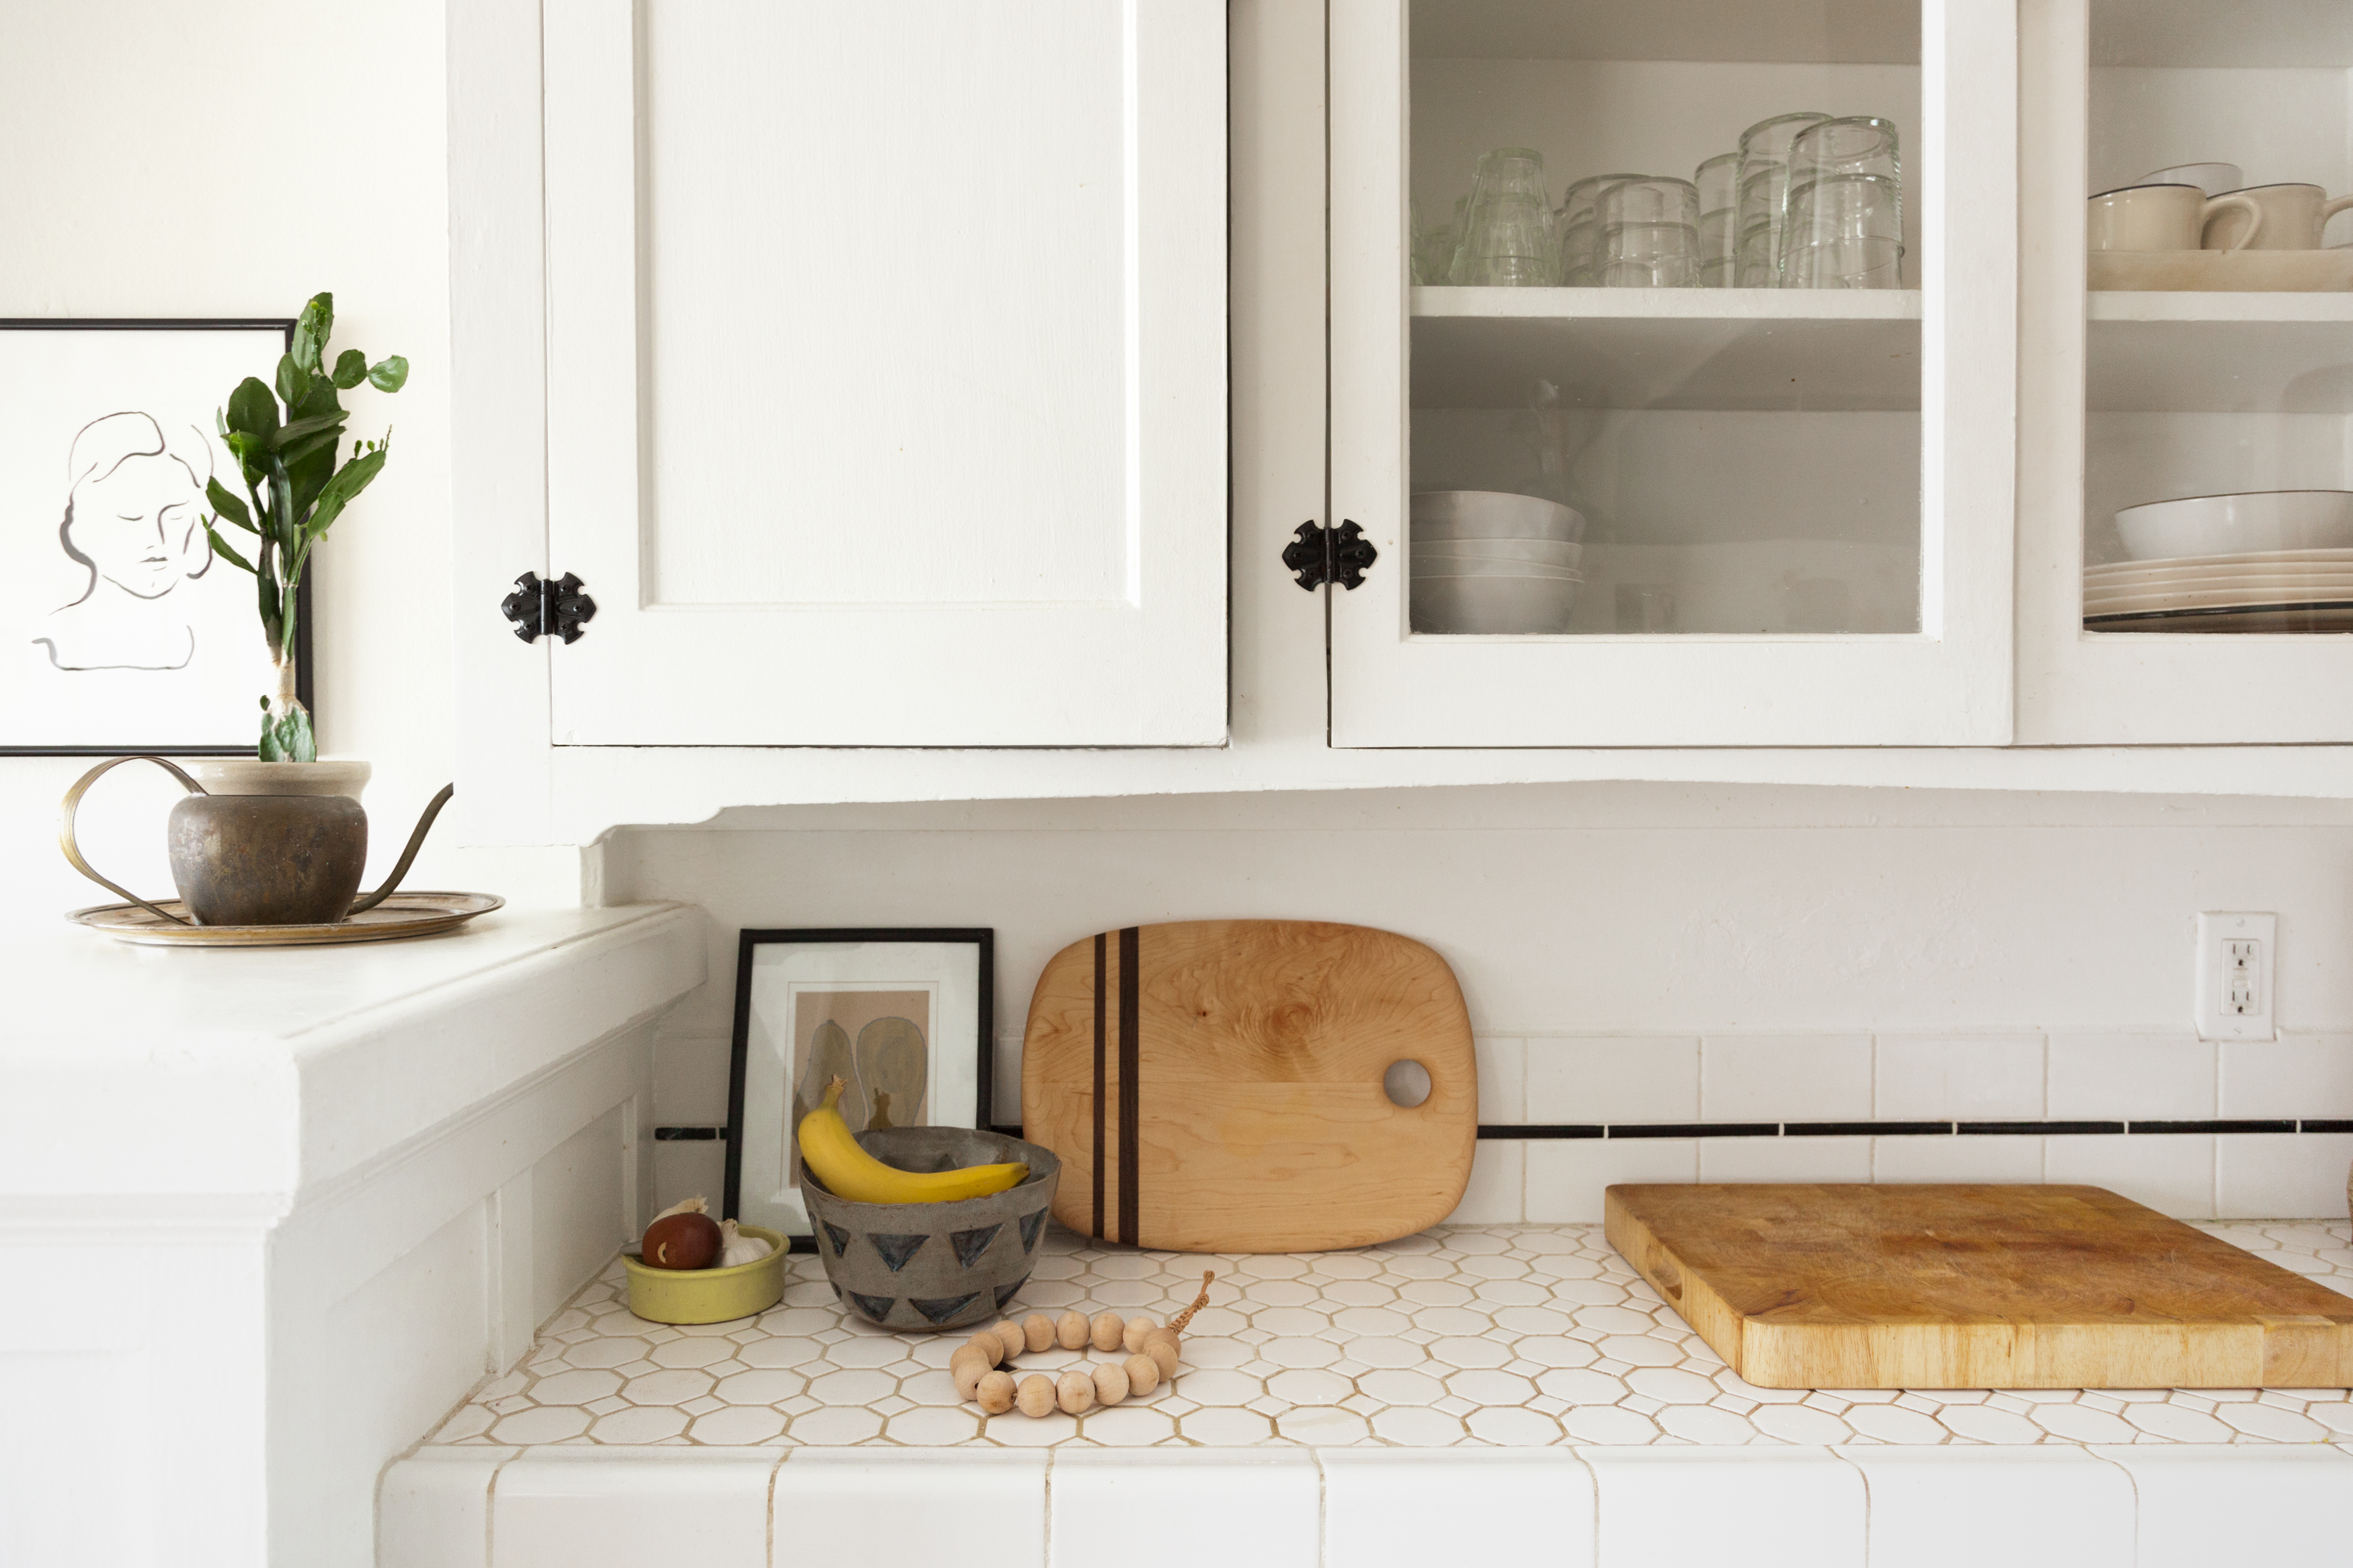 10 Common Rental Kitchen Frustrations, and How to Fix Them | Kitchn